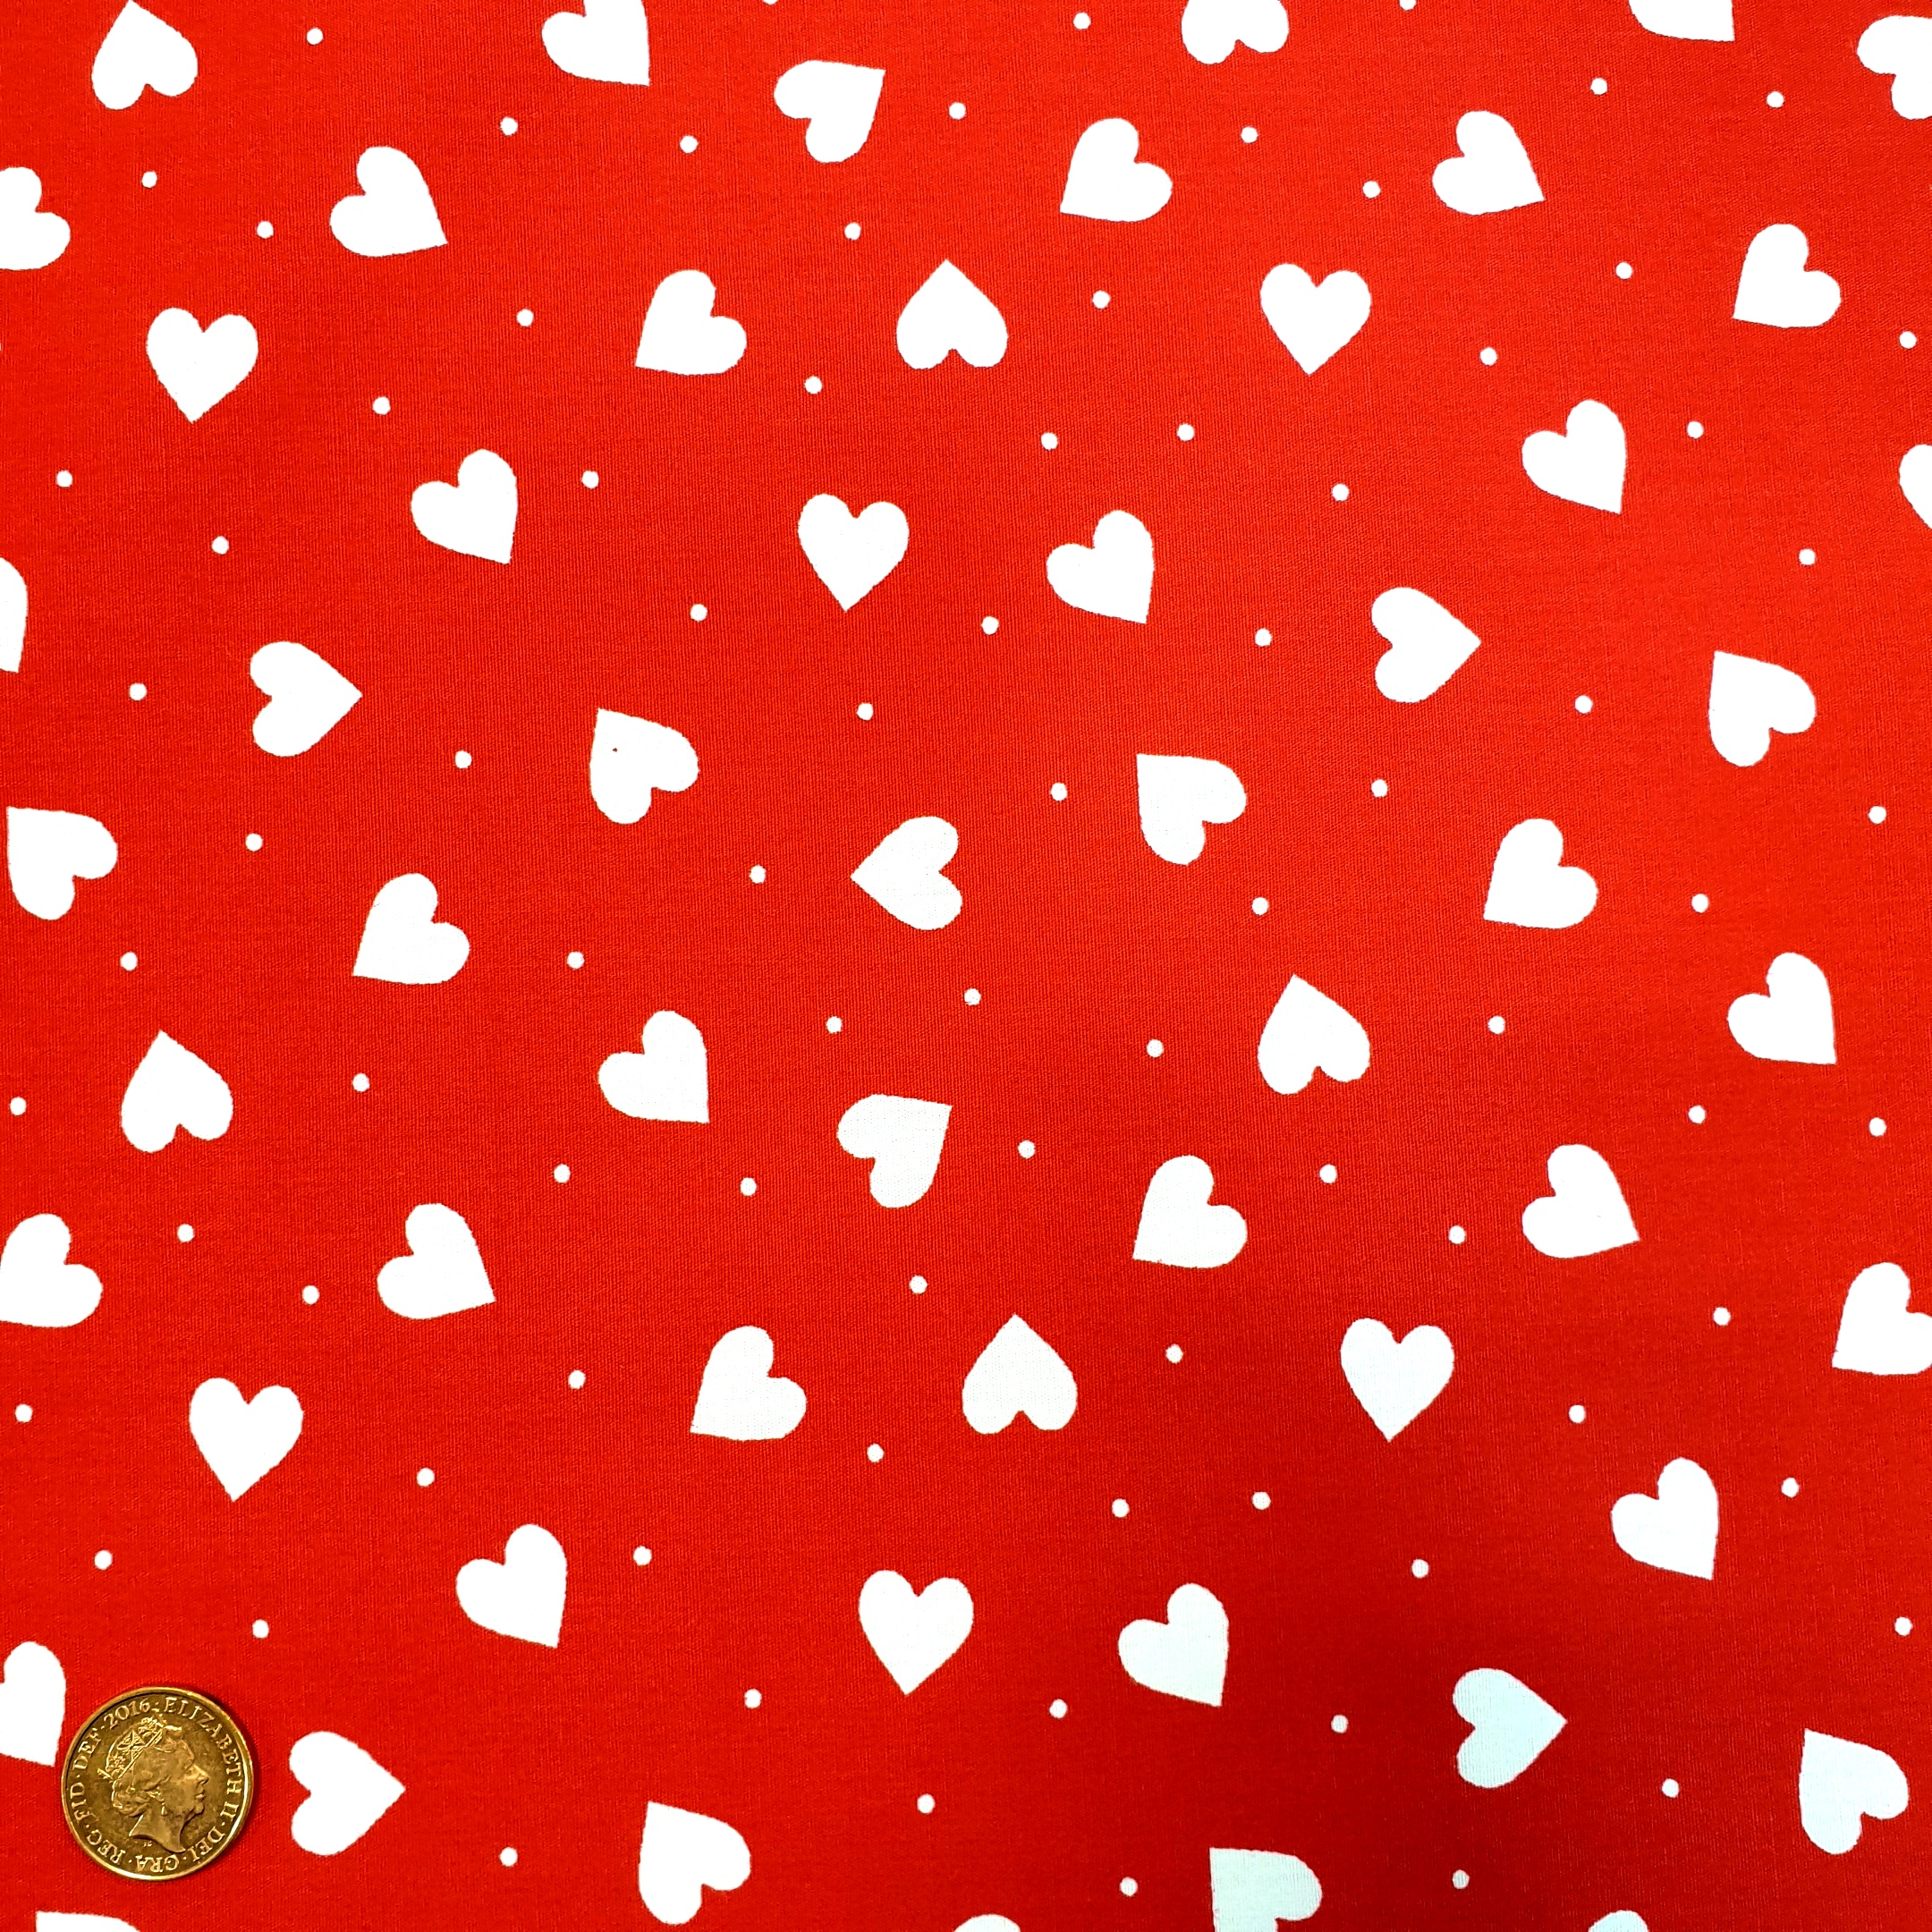 Heart Cotton White Hearts on Red